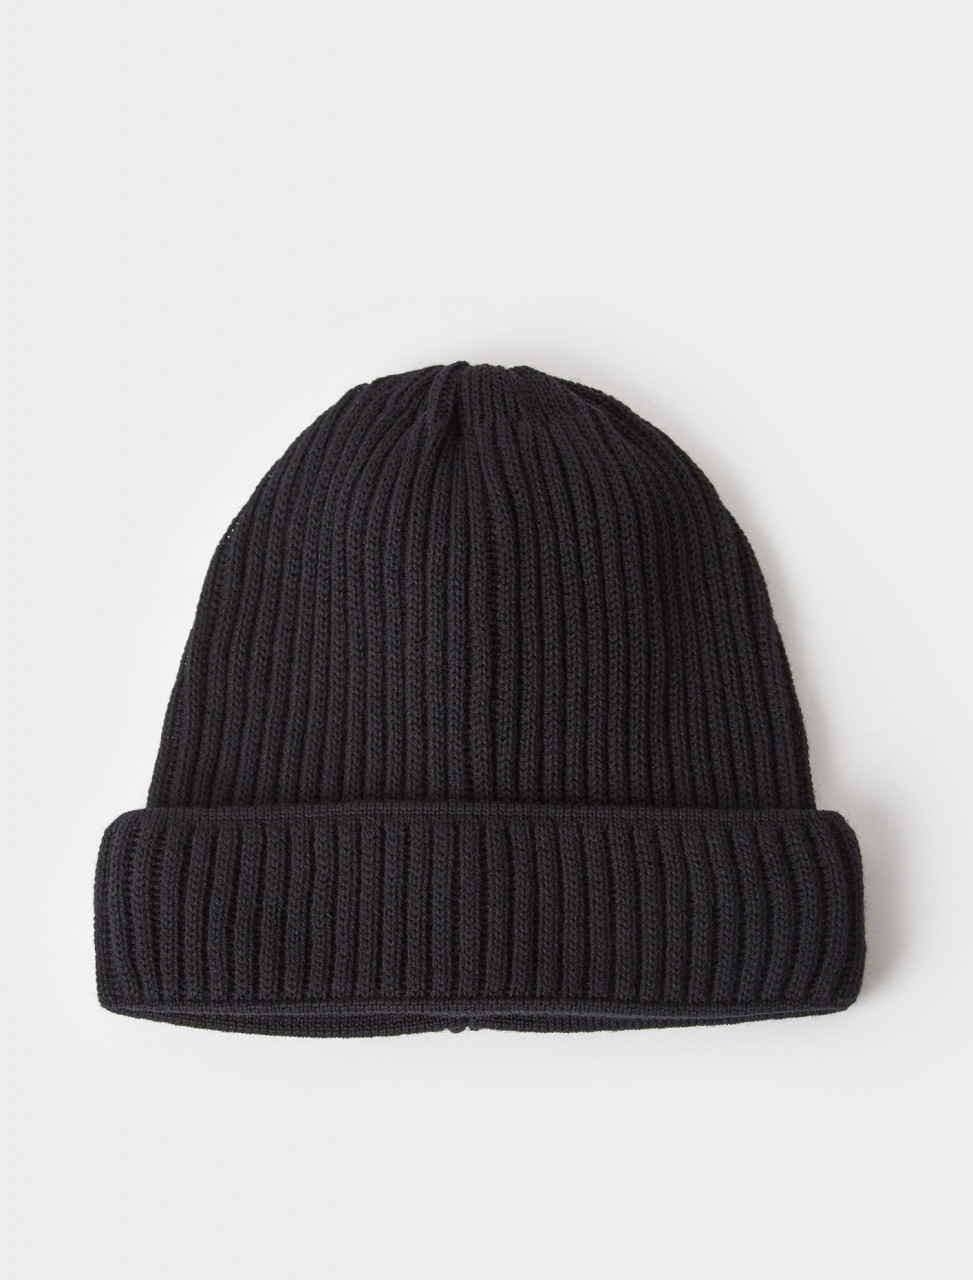 333200 ALASKA RIBBED KNIT BEANIE BLACK